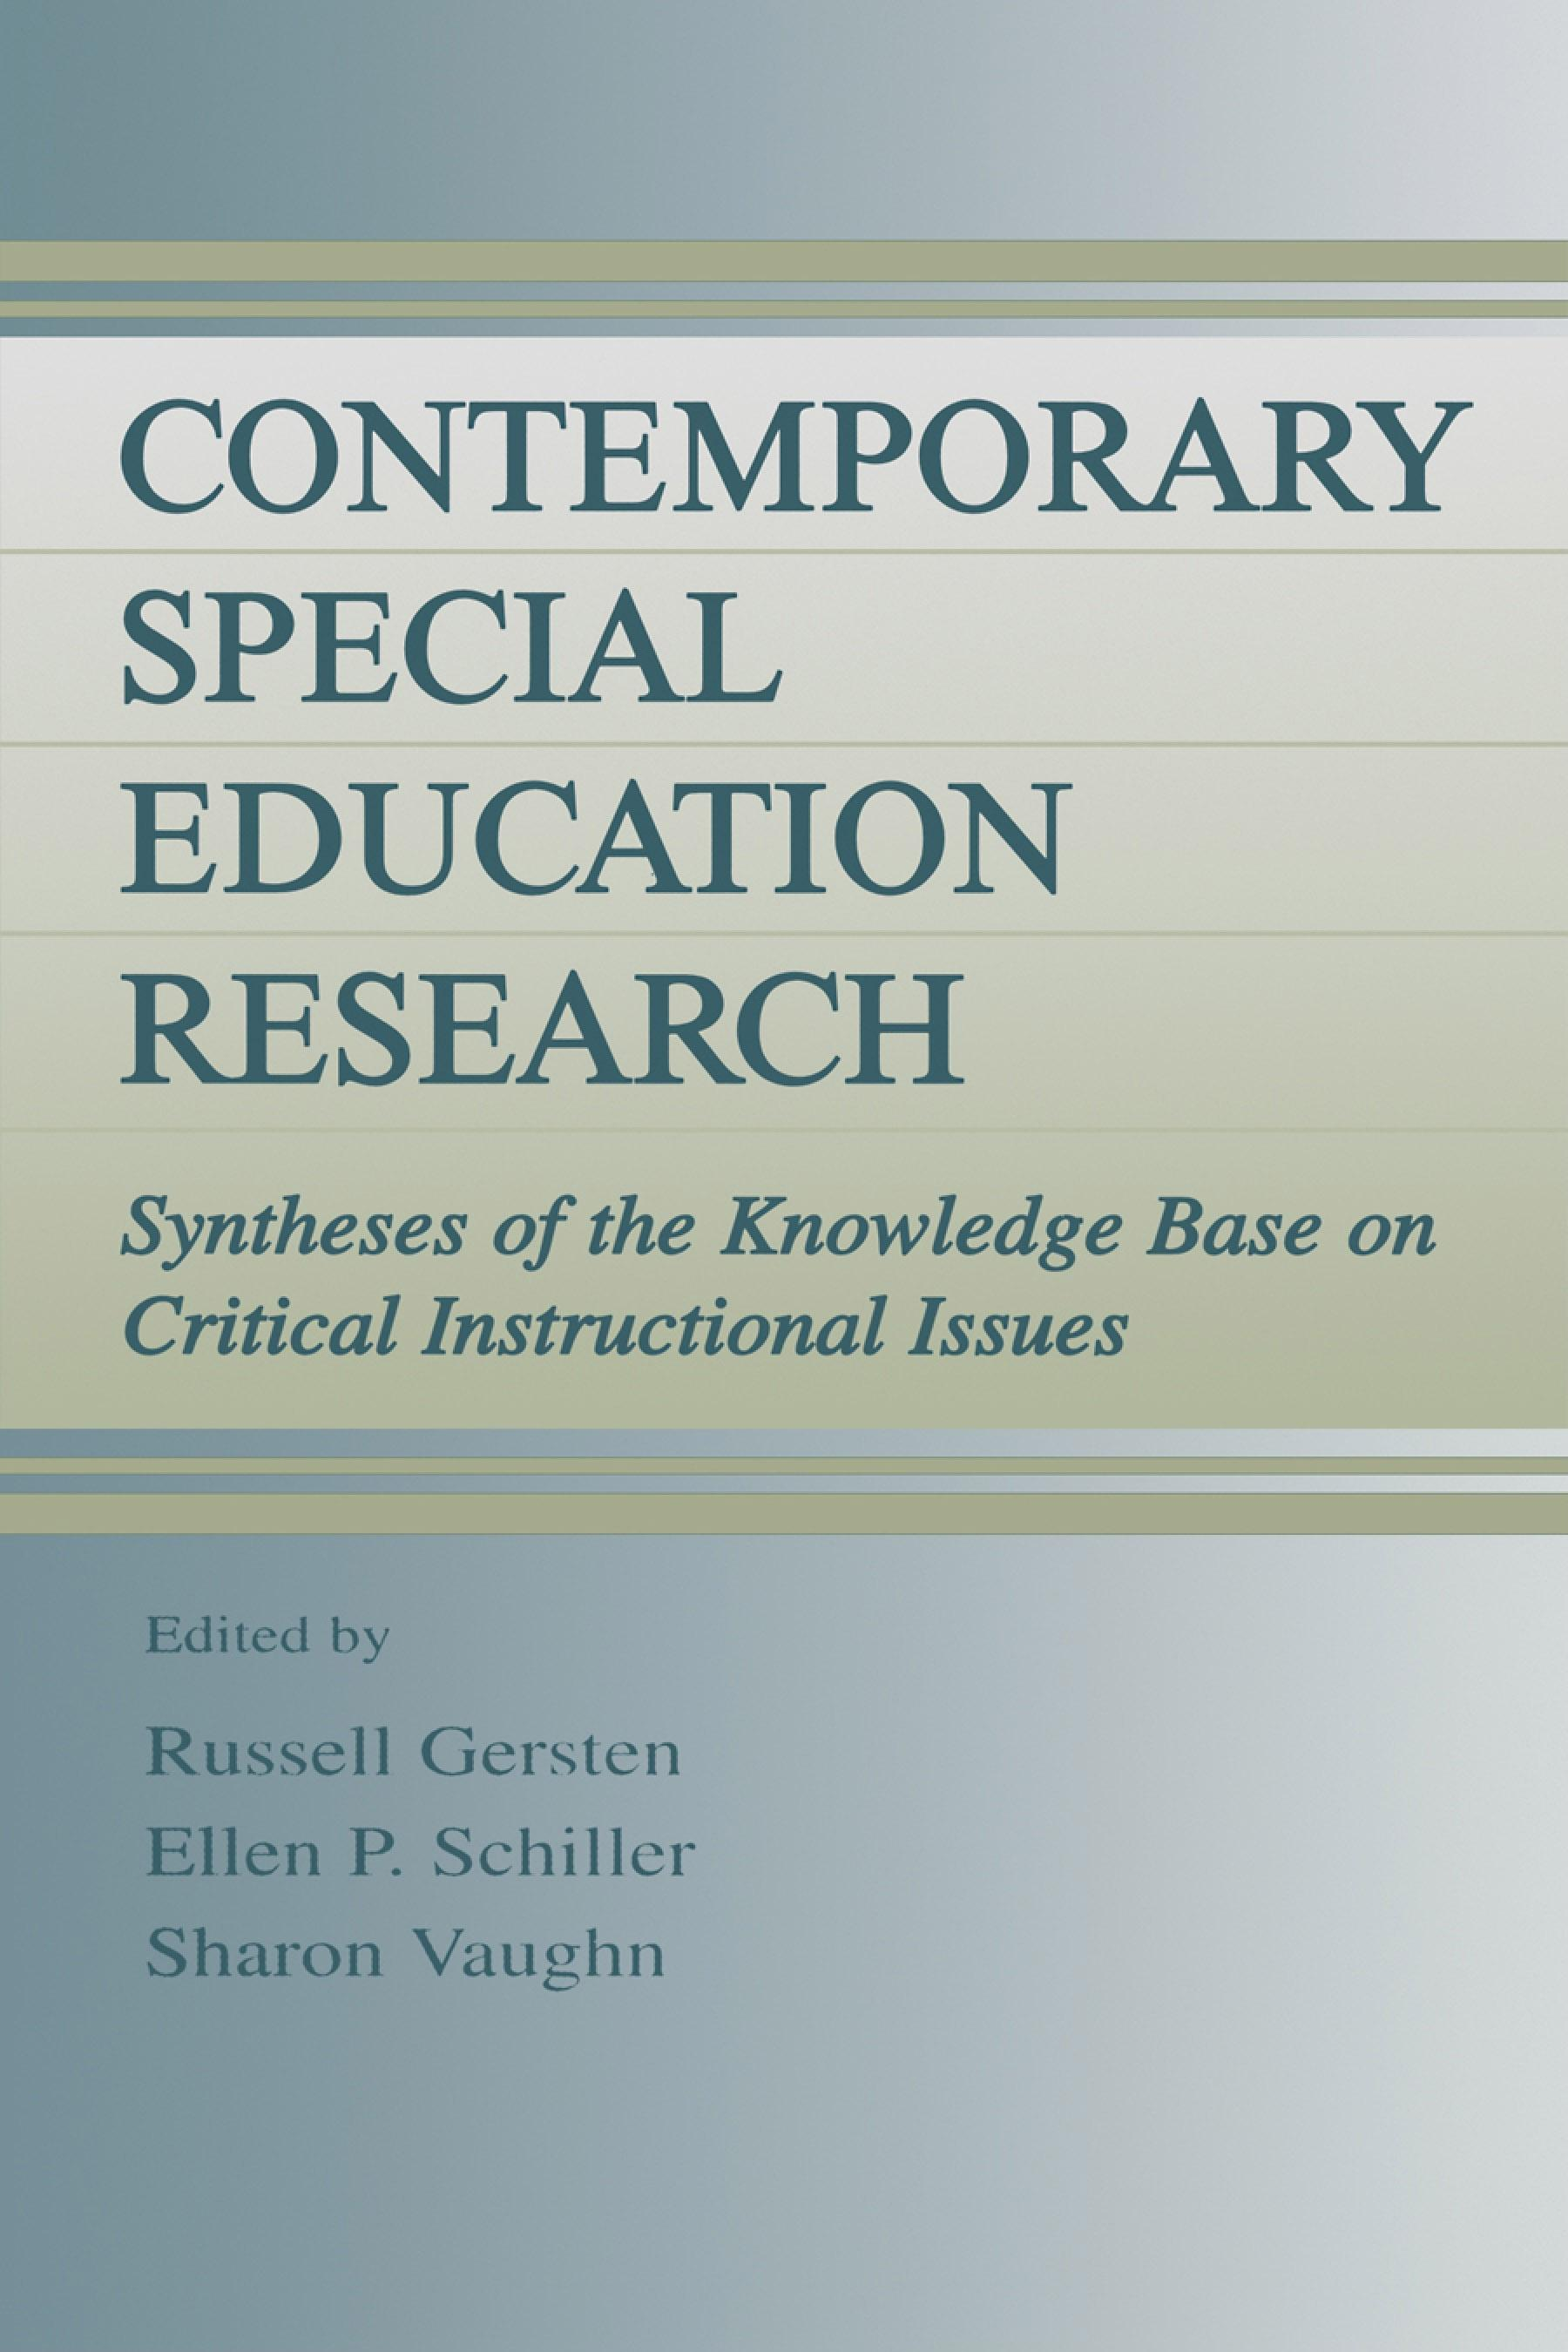 Contemporary Special Education Research: Syntheses of the Knowledge Base on Critical Instructional Issues EB9781410605962